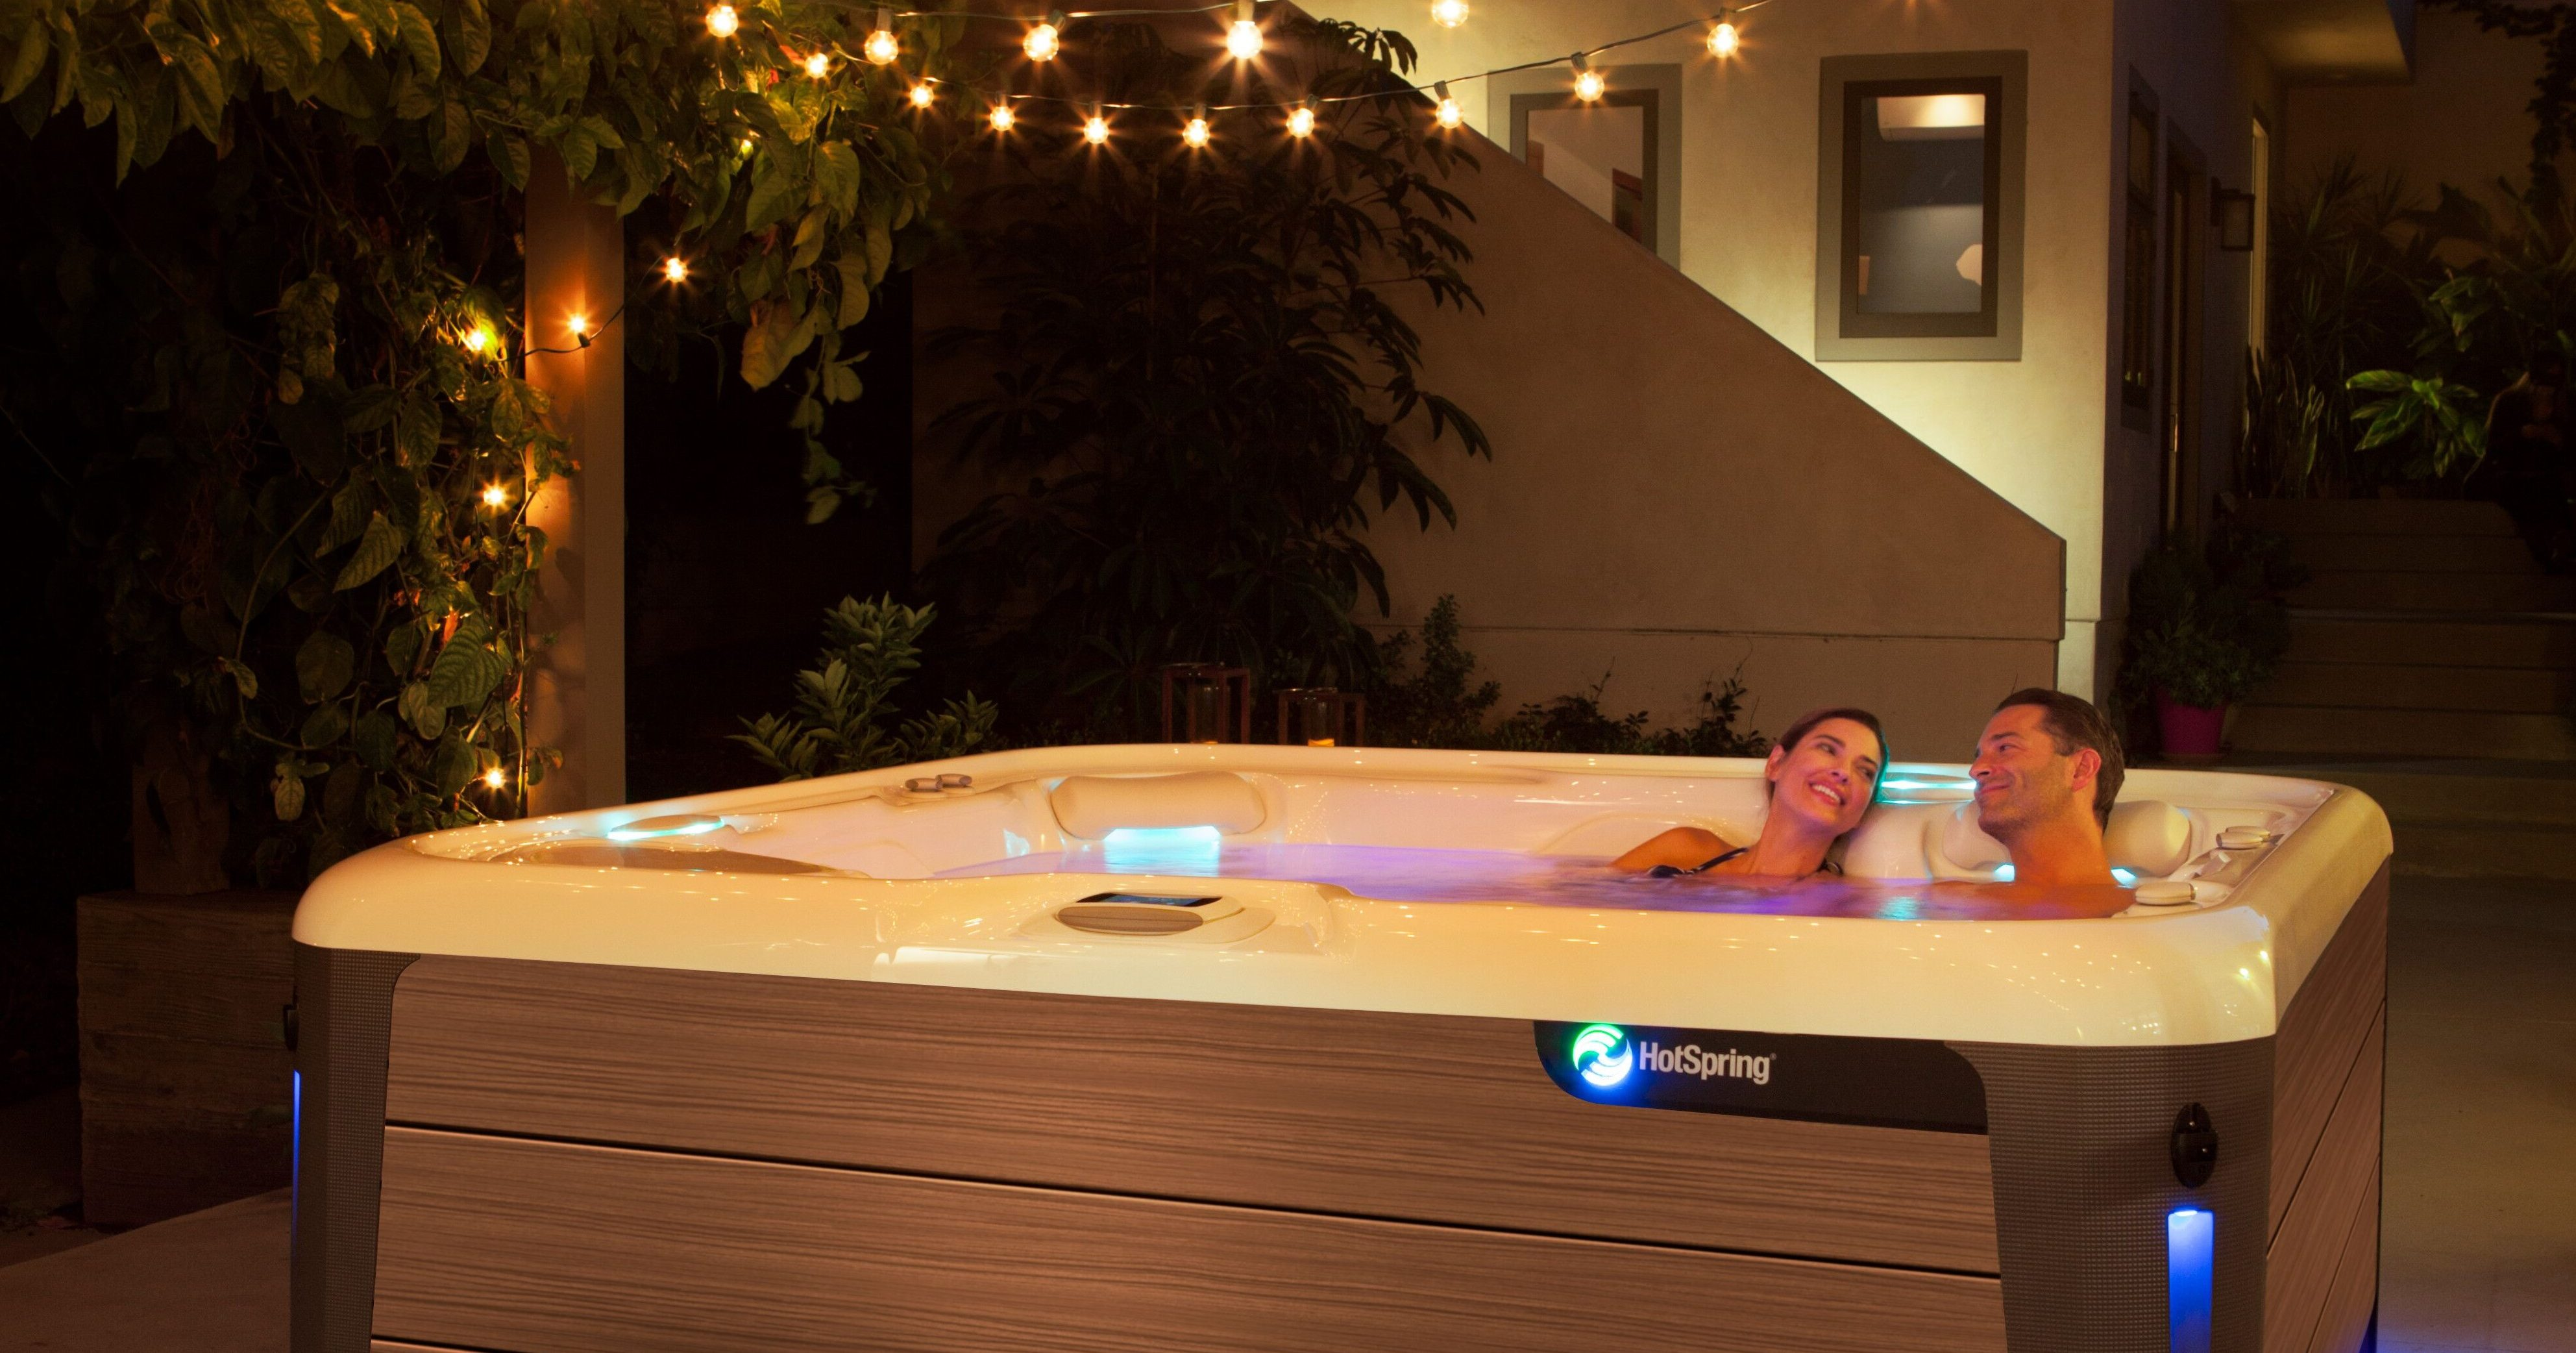 The 3 Elements of the Perfect Hot Tub Date Night